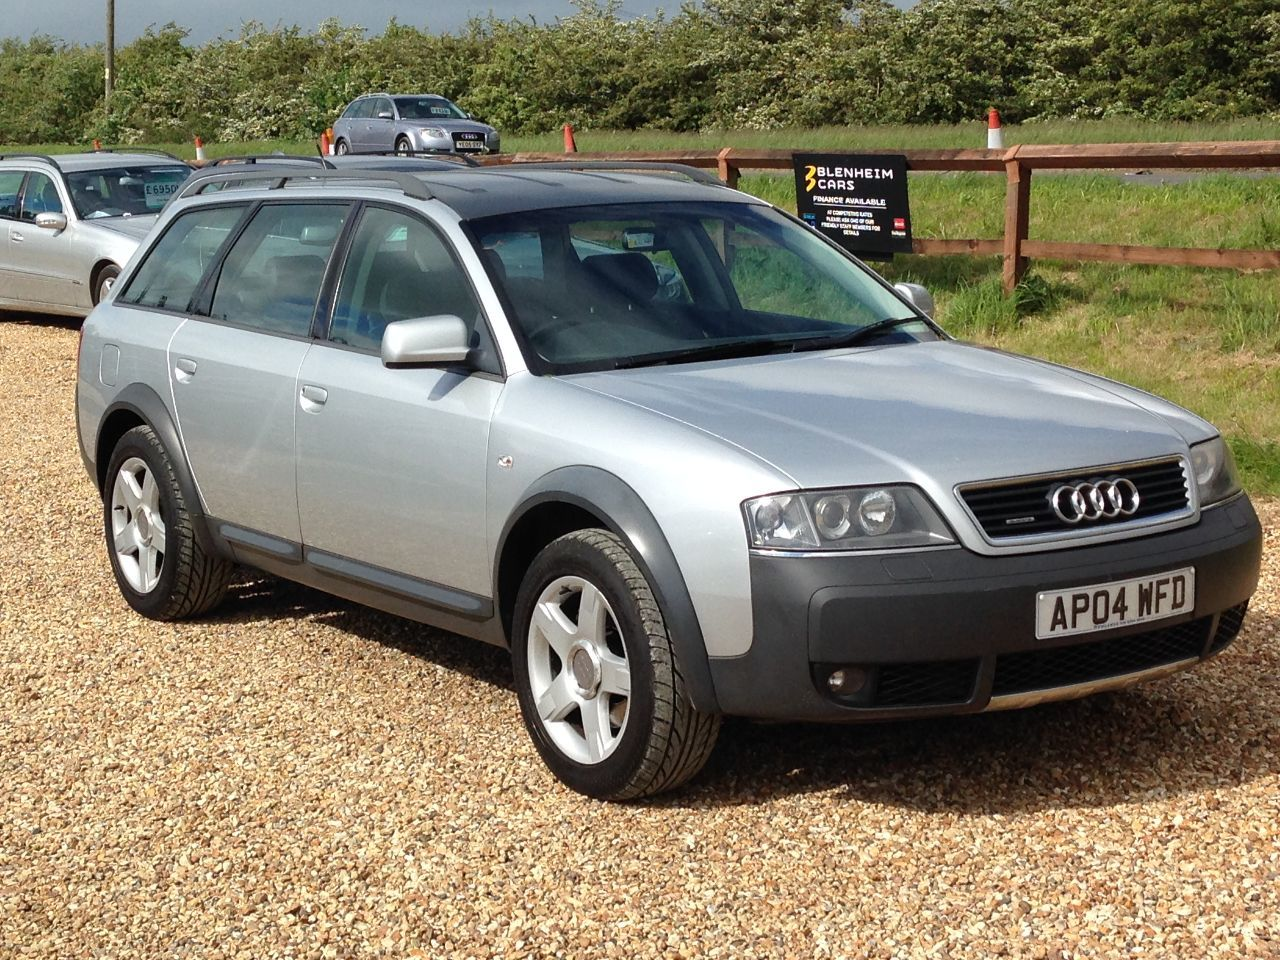 used audi allroad and second hand audi allroad in oxfordshire. Black Bedroom Furniture Sets. Home Design Ideas